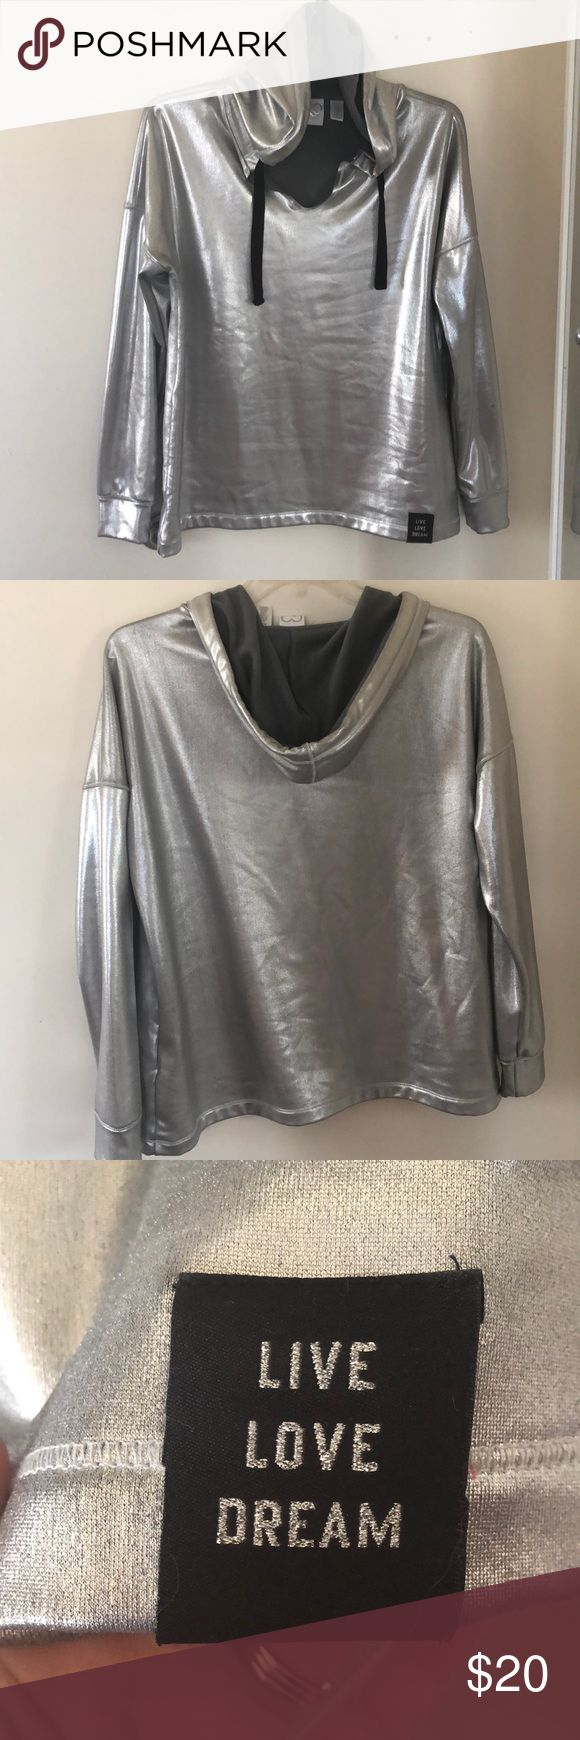 "❤️NWOT❤️ Aeropostale Metallic Hoodie ❤️Brand new without tags❤️ size XL Aeropostale Metallic hoodie. Cute tag on bottom left that says ""LIVE LOVE DREAM"". Never worn. Has stretch to it. Super soft fleece inside. Aeropostale Tops Sweatshirts & Hoodies"